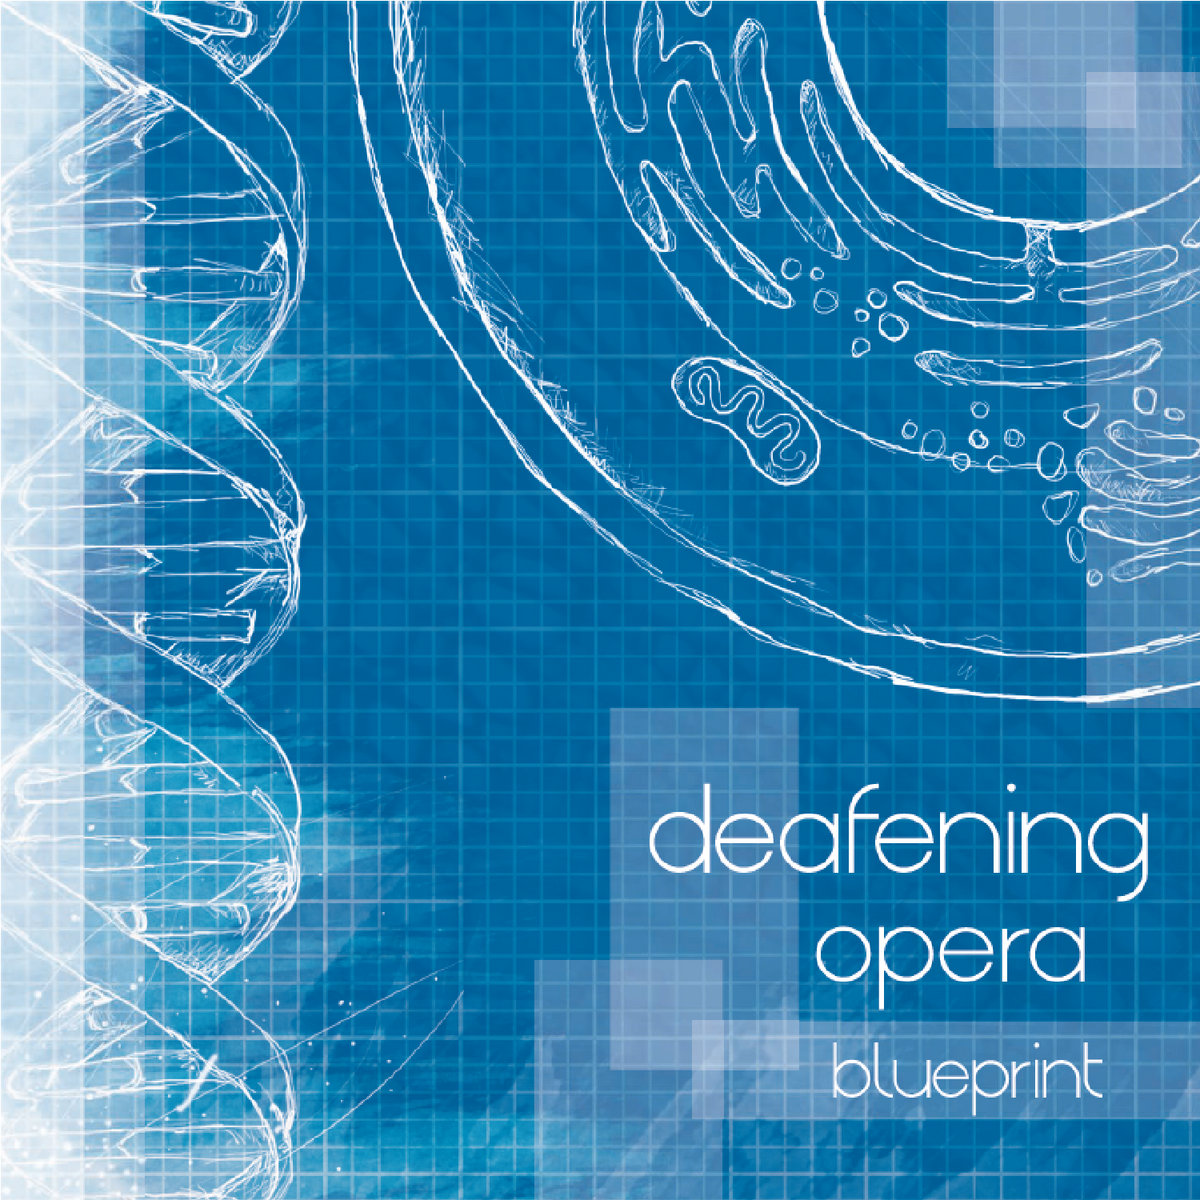 Deafening opera blueprint by deafening opera malvernweather Image collections